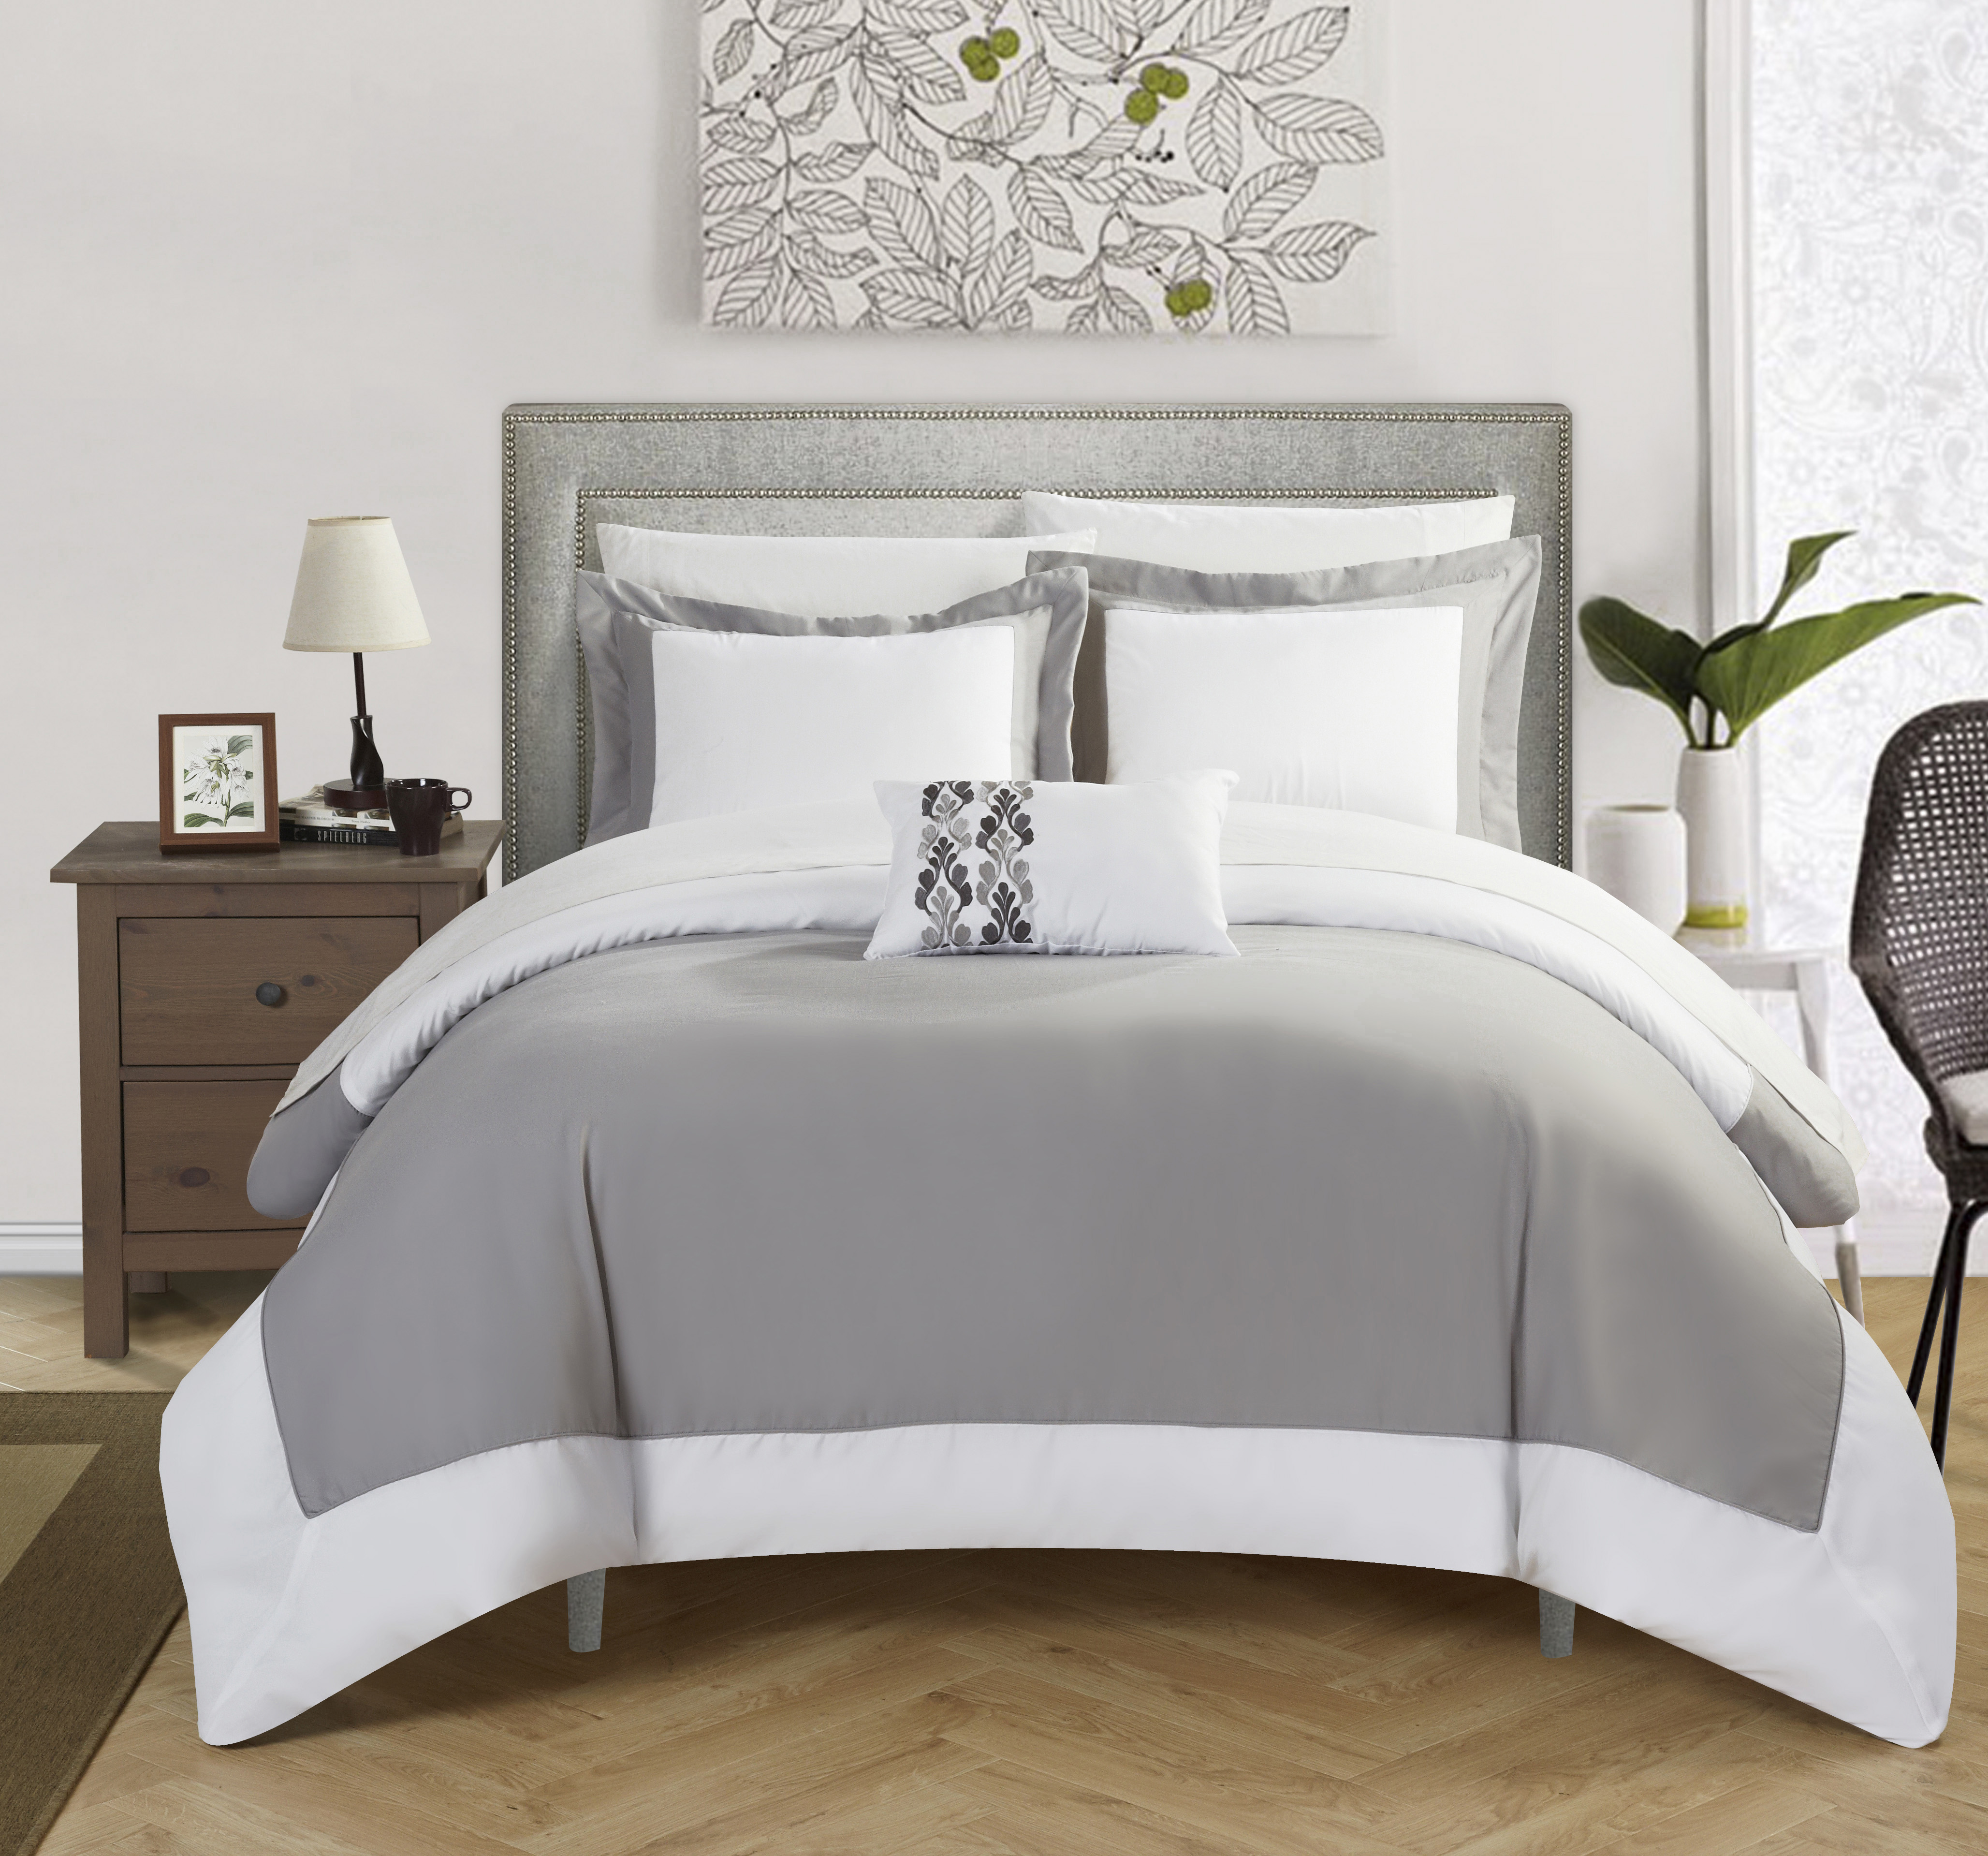 Chic Home 8-Piece Uma MODERN TWO TONE REVERSIBLE HOTEL COLLECTION, with embellished borders and embroidery decor pillow King Bed In a Bag Duvet Set Grey With White Sheets included